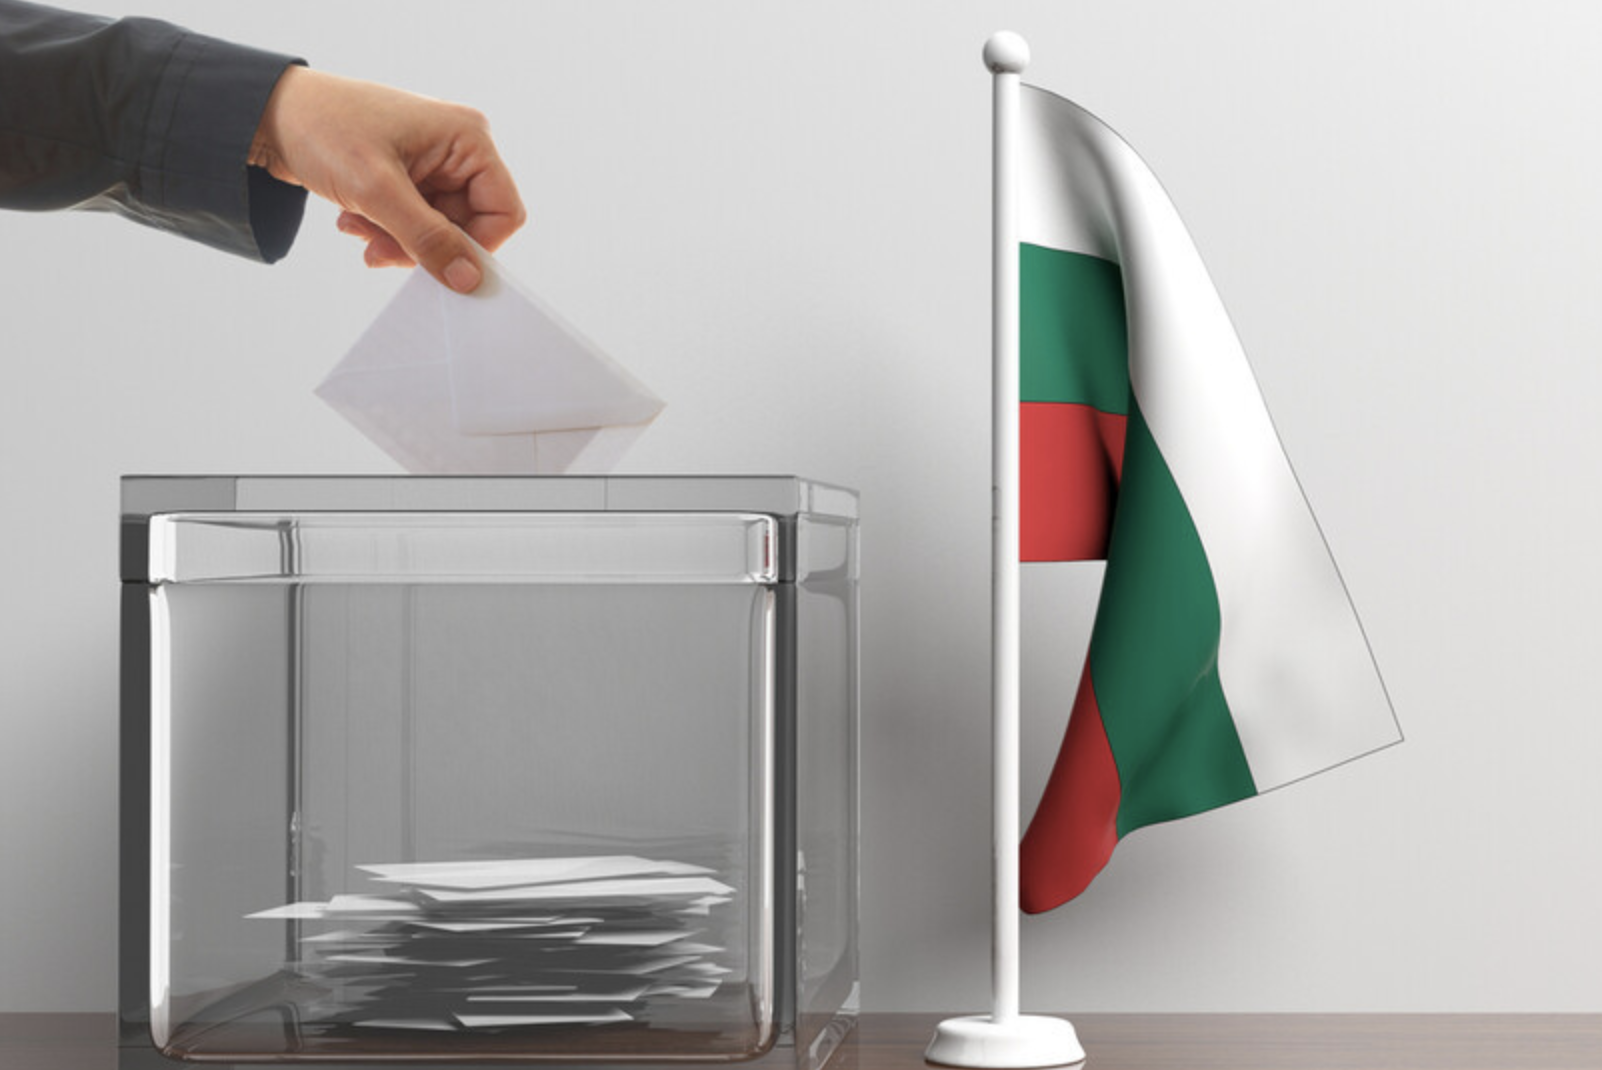 Bulgaria: CEC finalizes electoral process for mobile ballot boxes and diaspora voters